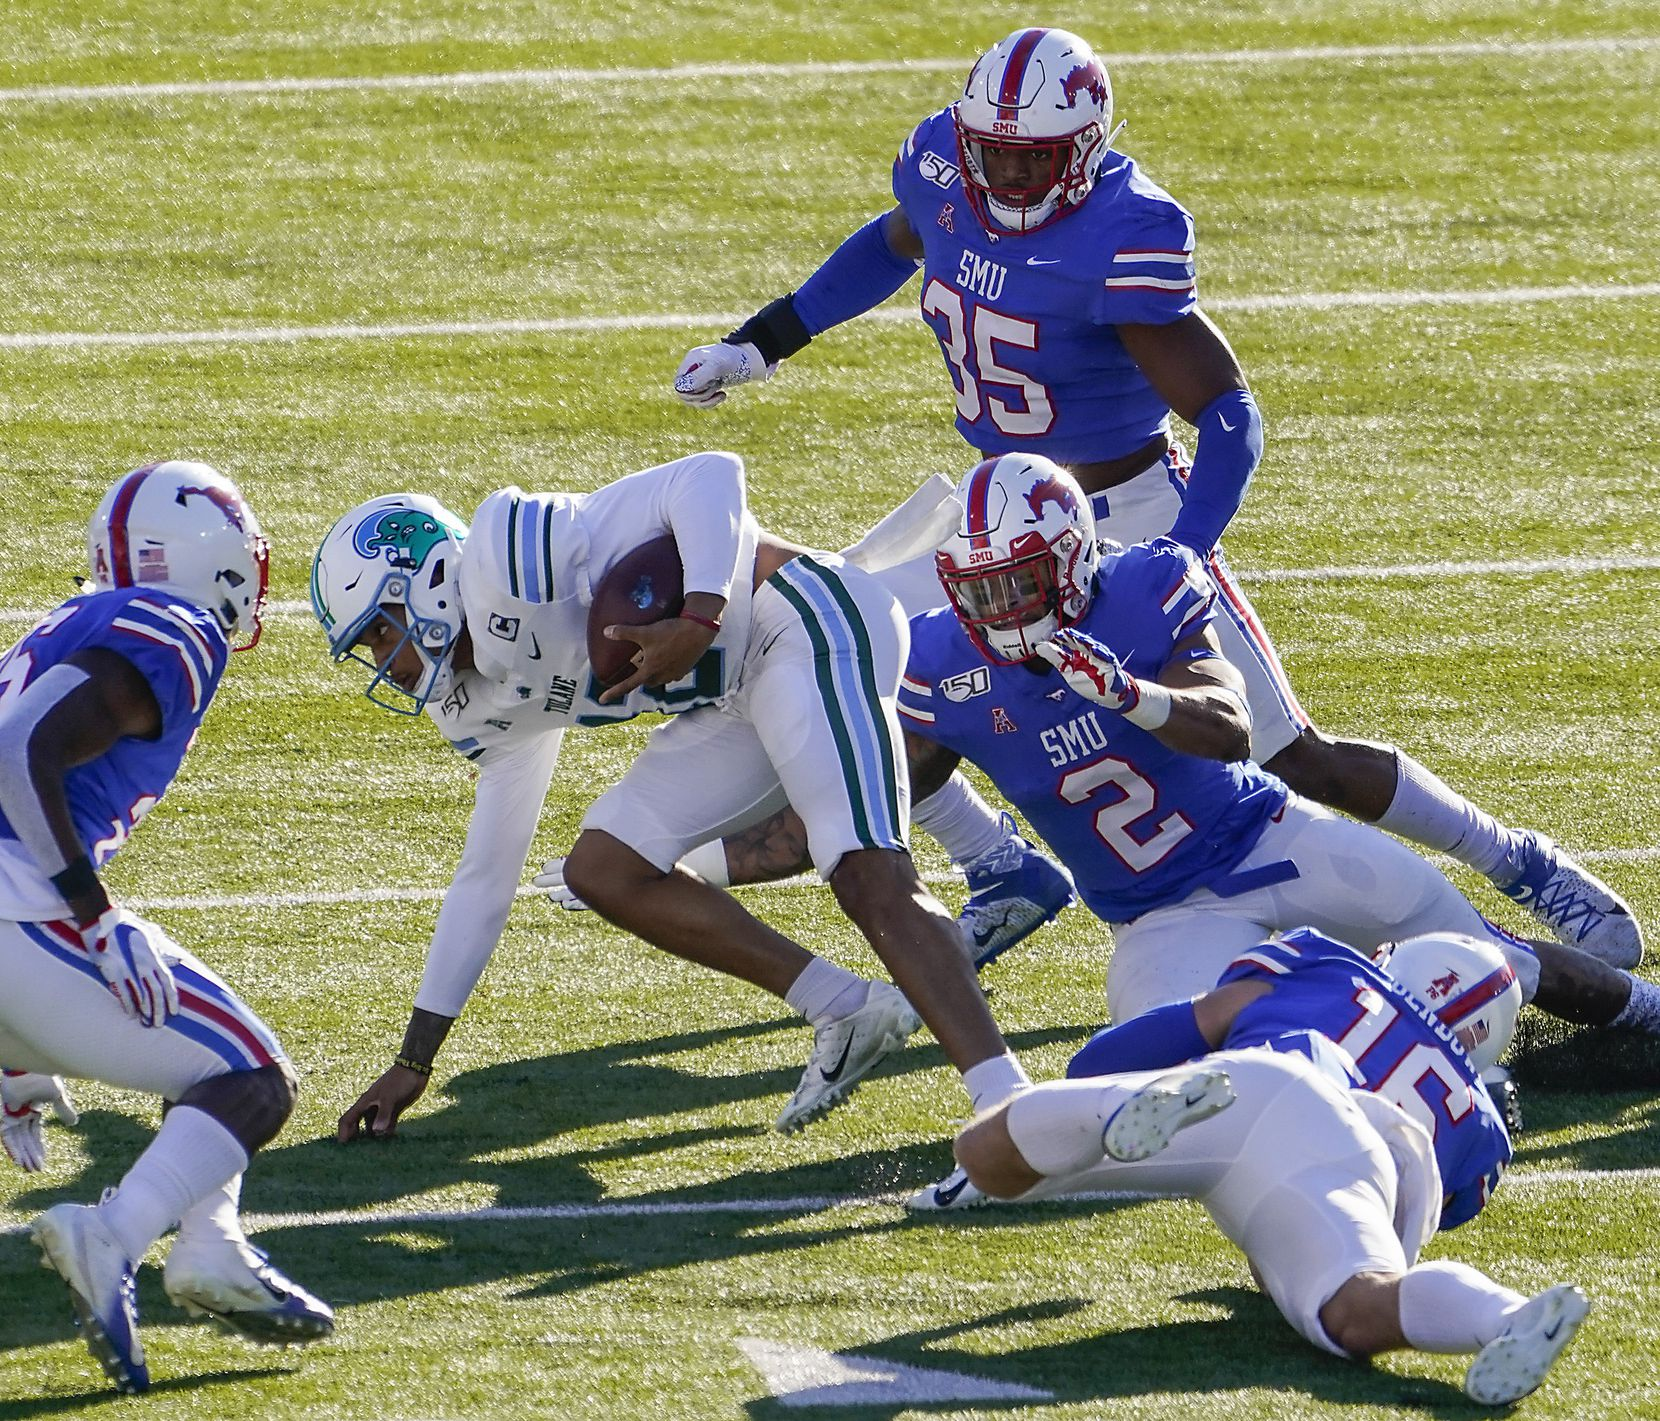 Tulane quarterback Justin McMillan (12) is brought down by SMU defensive end Delontae Scott (35), safety Patrick Nelson (2) and safety Trevor Denbow (16) during the first half of an NCAA football game at Ford Stadium on Saturday, Nov. 30, 2019, in Dallas.